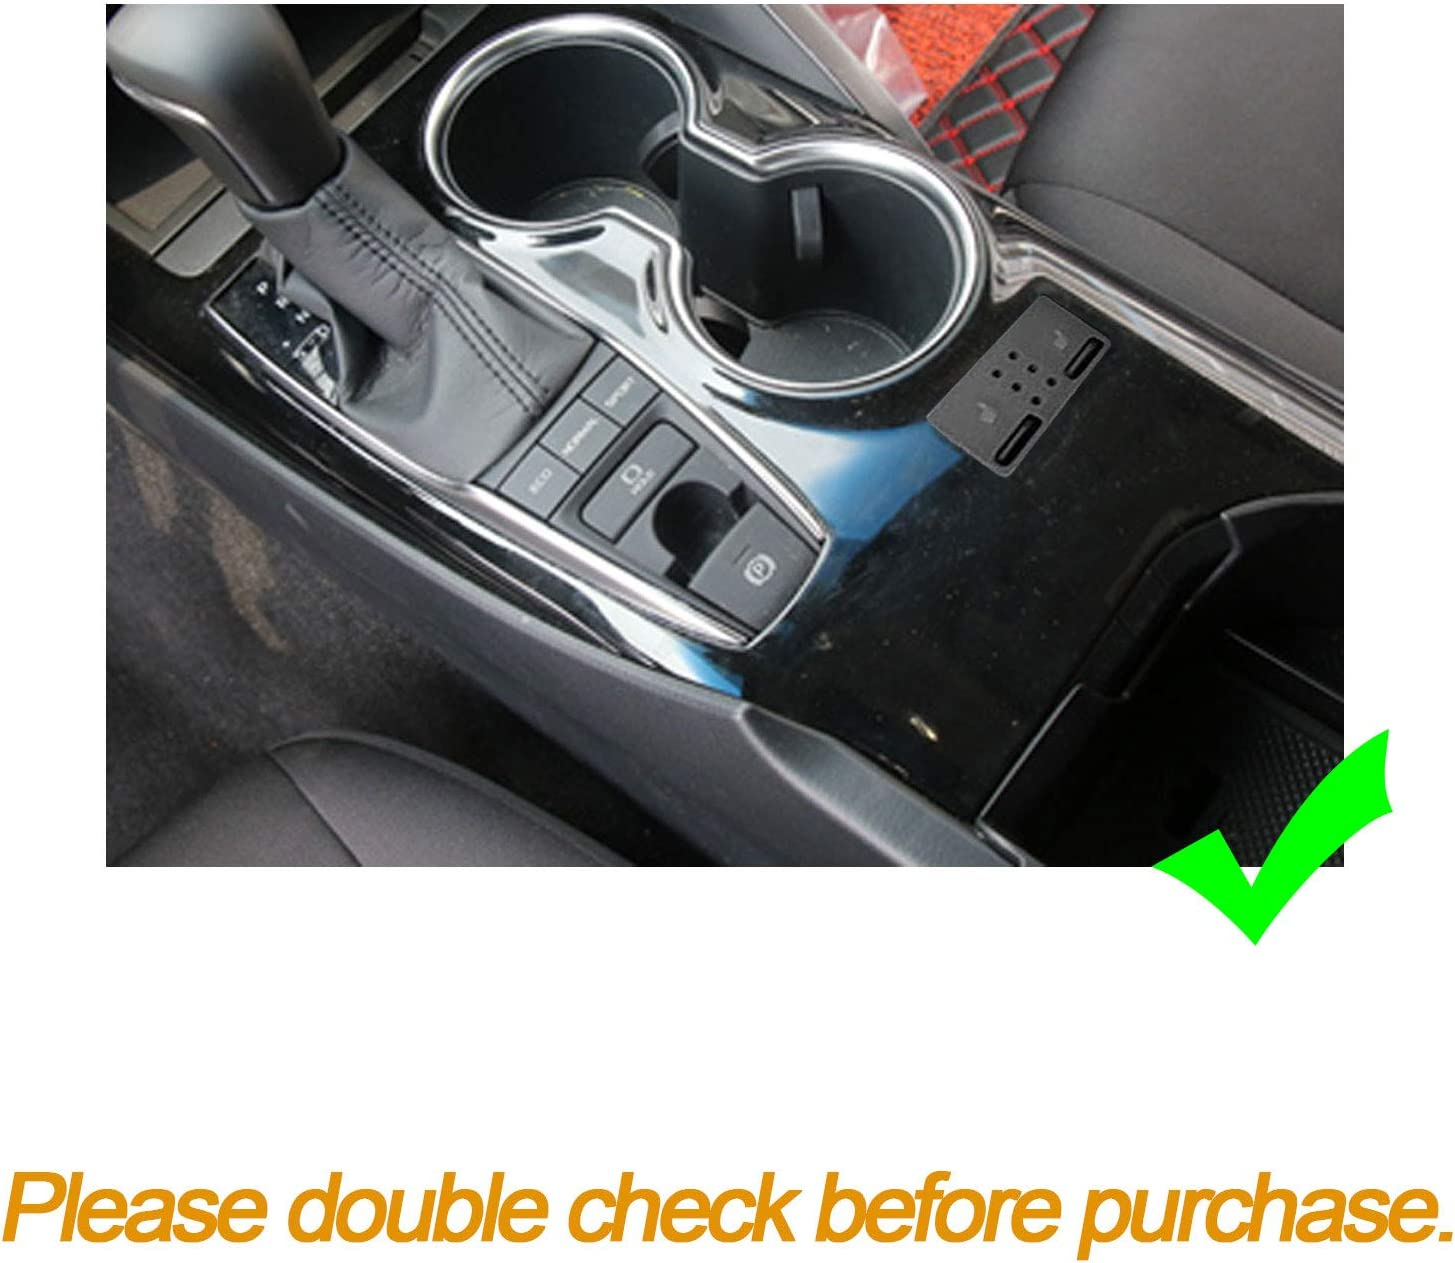 Xotic Tech Carbon Fiber Pattern Gear Shift Knob Console Panel Trims Cover Cup Holder Decor Decal for Toyota Camry 2018+